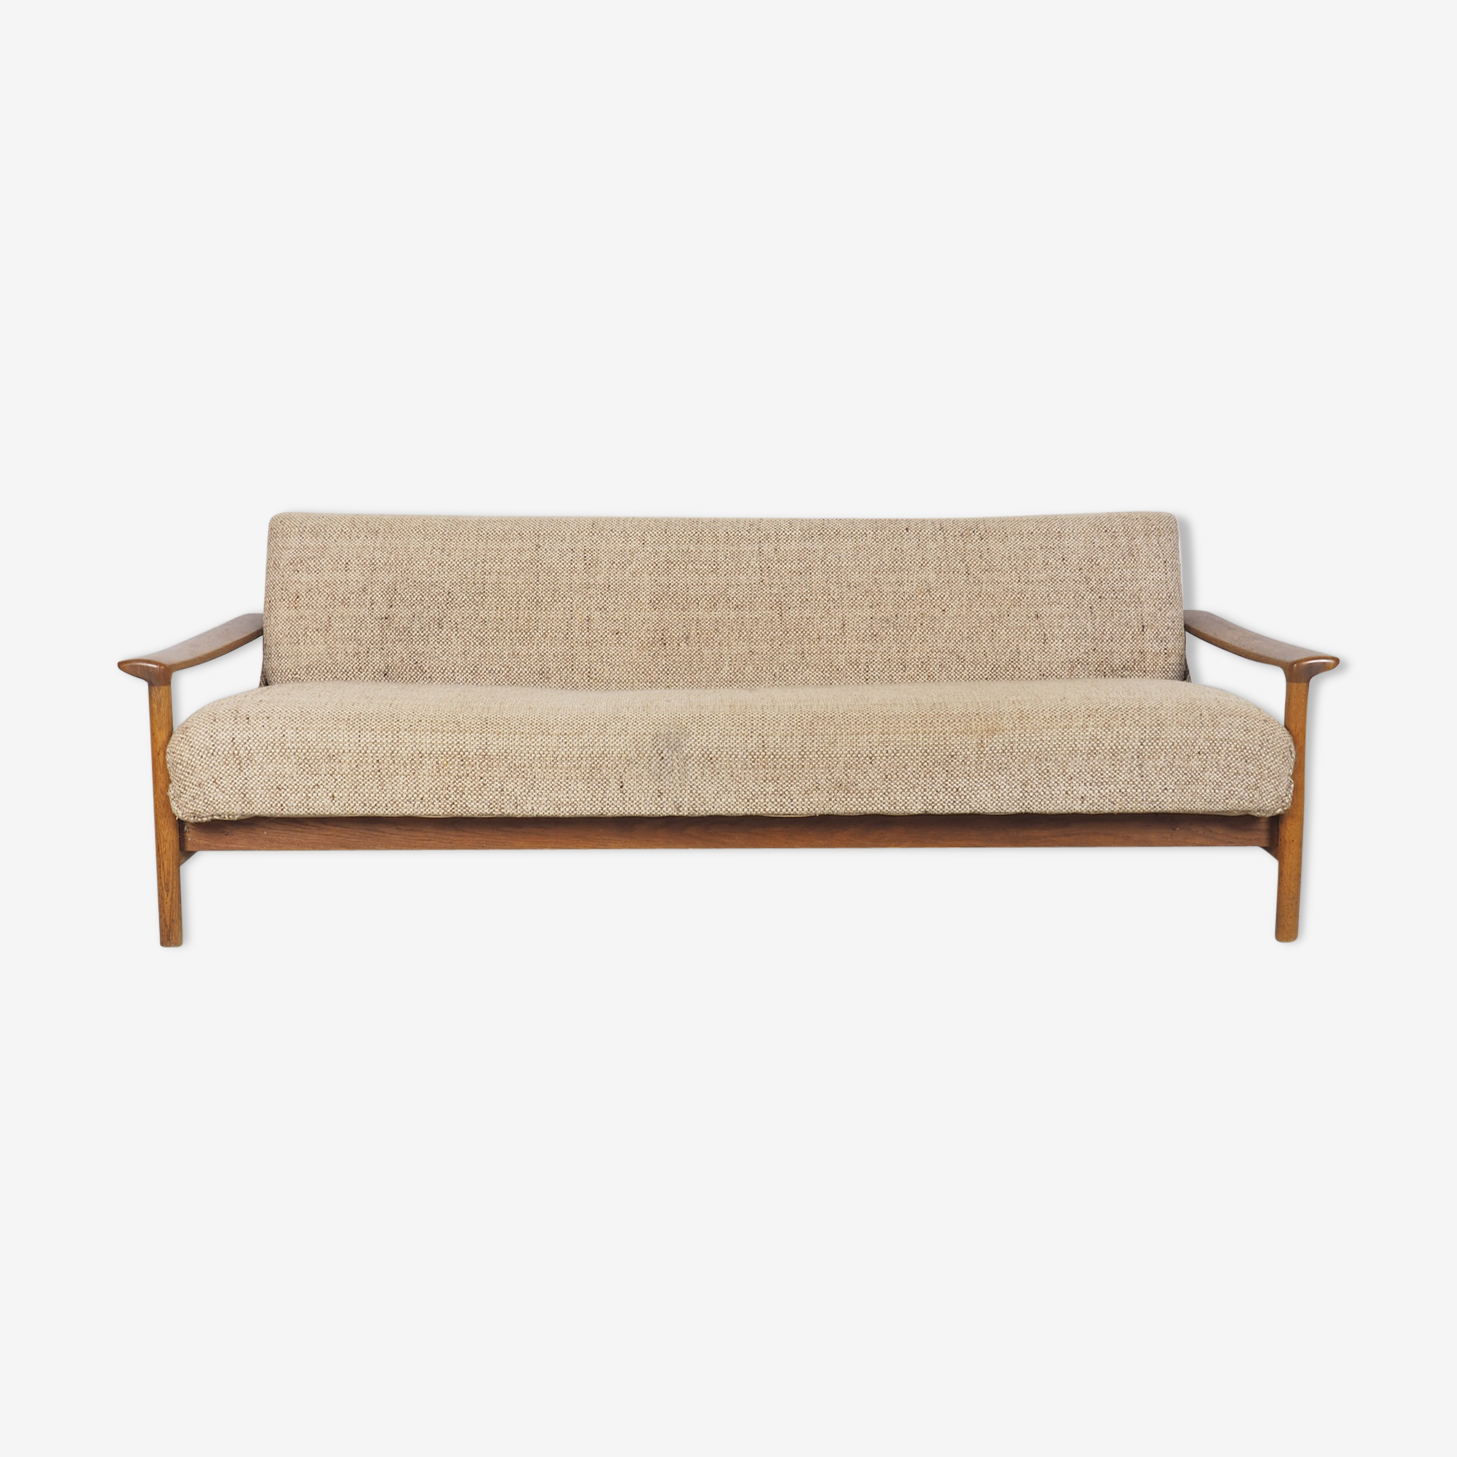 Daybed by Goldfeder Germany 1960